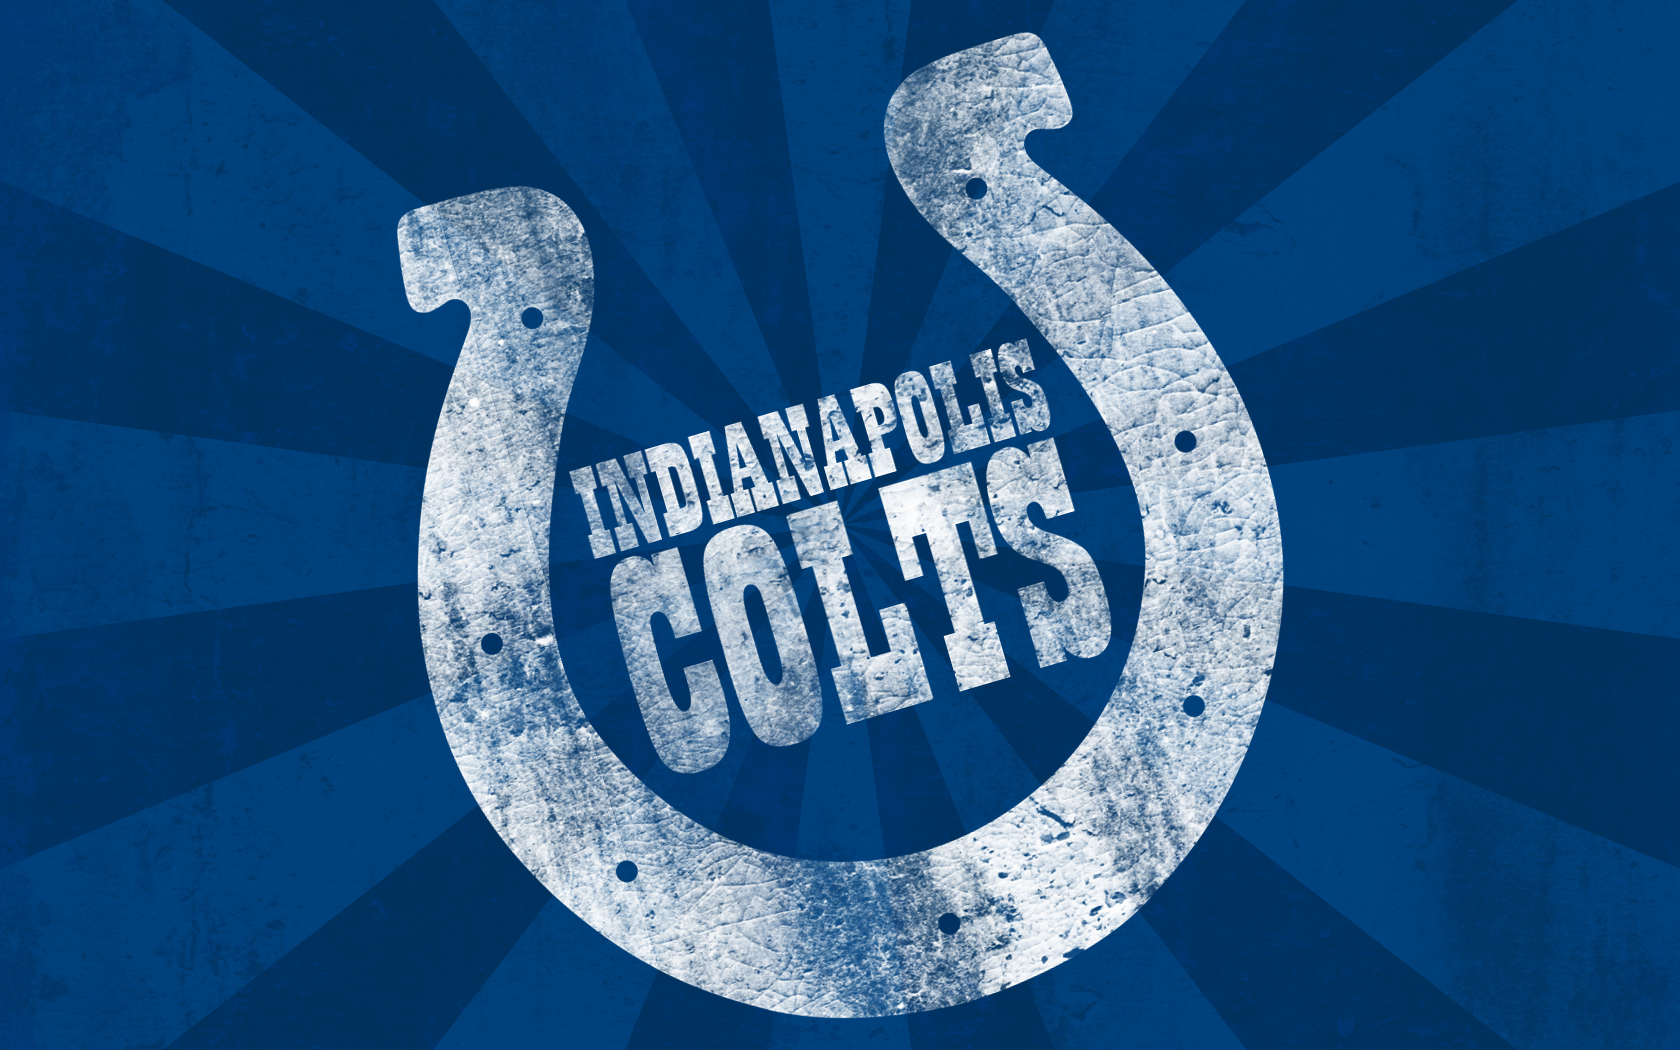 Green Bay Packers Iphone X Wallpaper Indianapolis Colts Wallpaper And Background Image